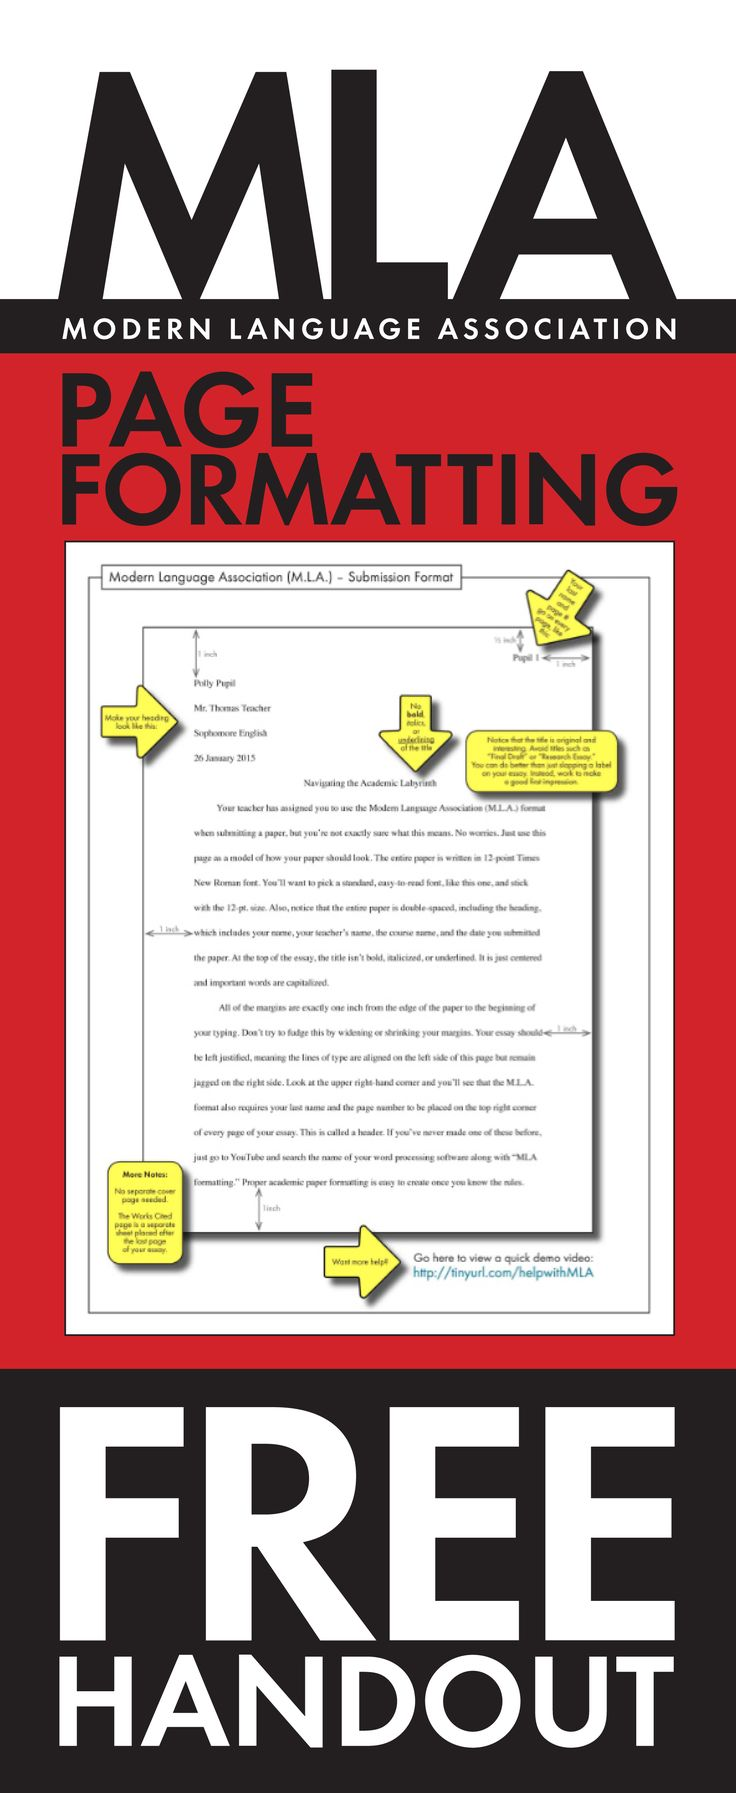 best images about writing resources graphic help students understand the proper way to format the first page of their essays according to the modern language association m l a guidelines this